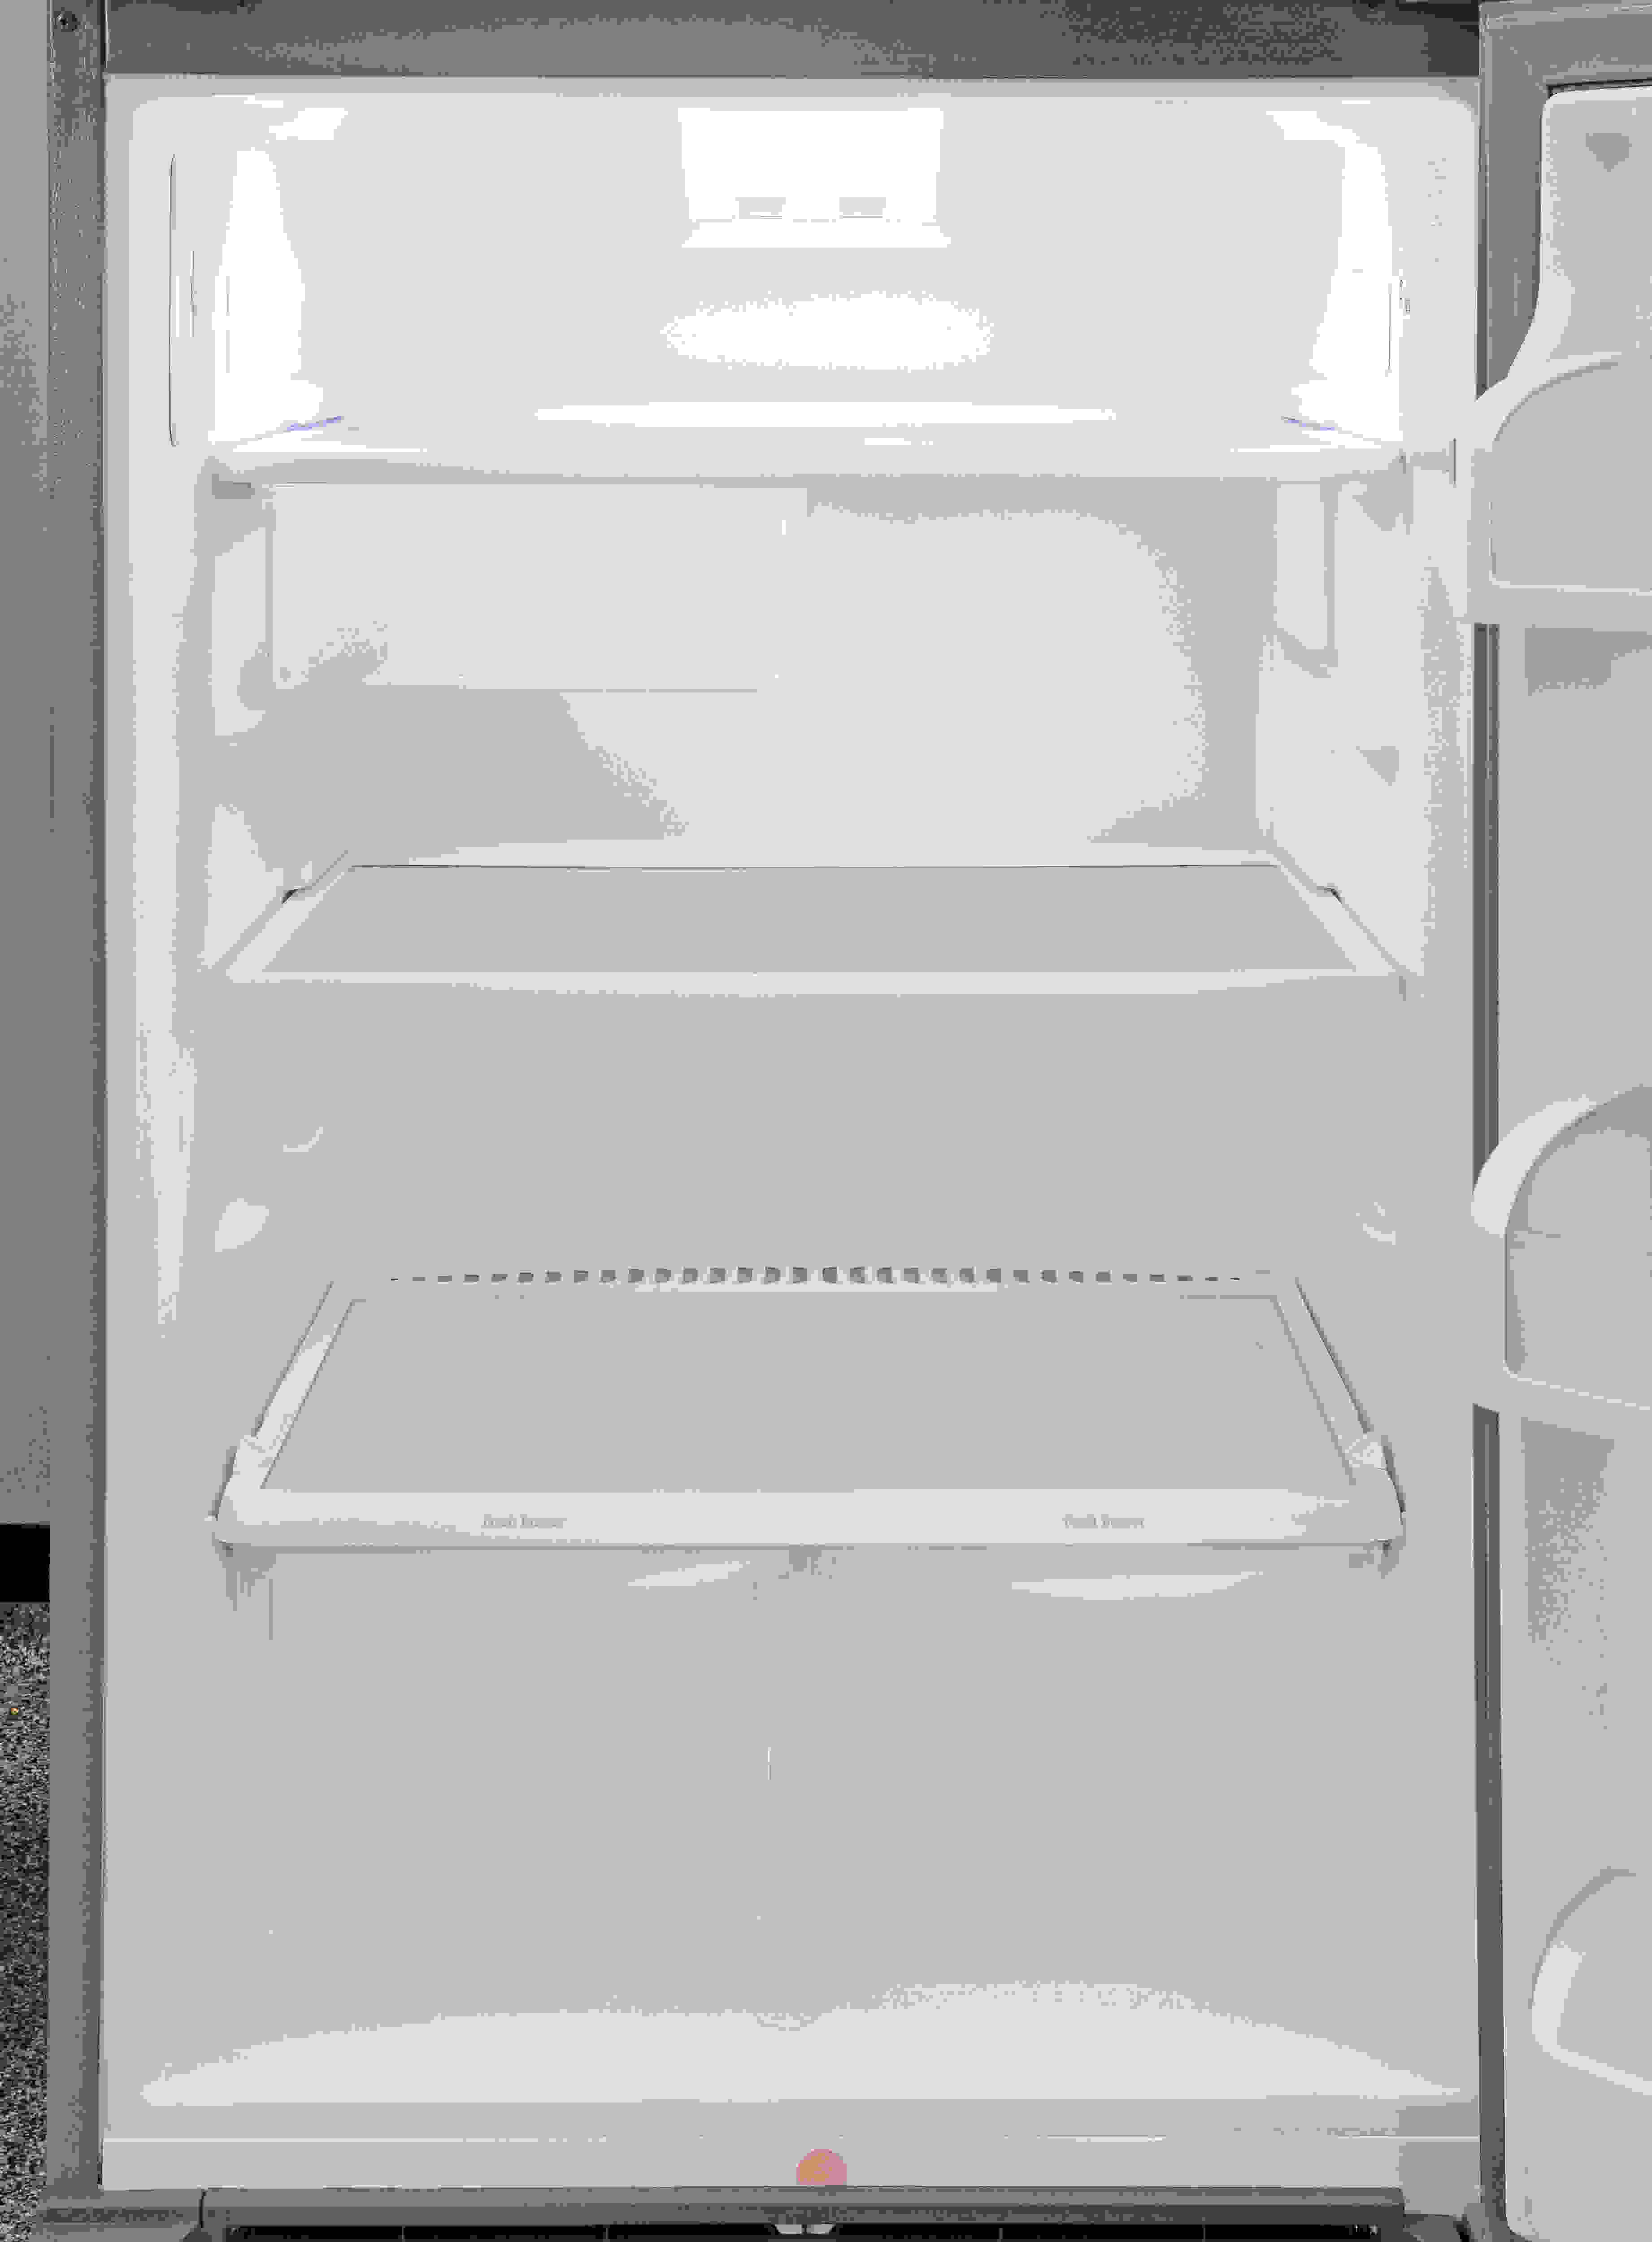 The Frigidaire Gallery FGTR1845QF's basic layout offers flexibility and—for the most part—easy access.